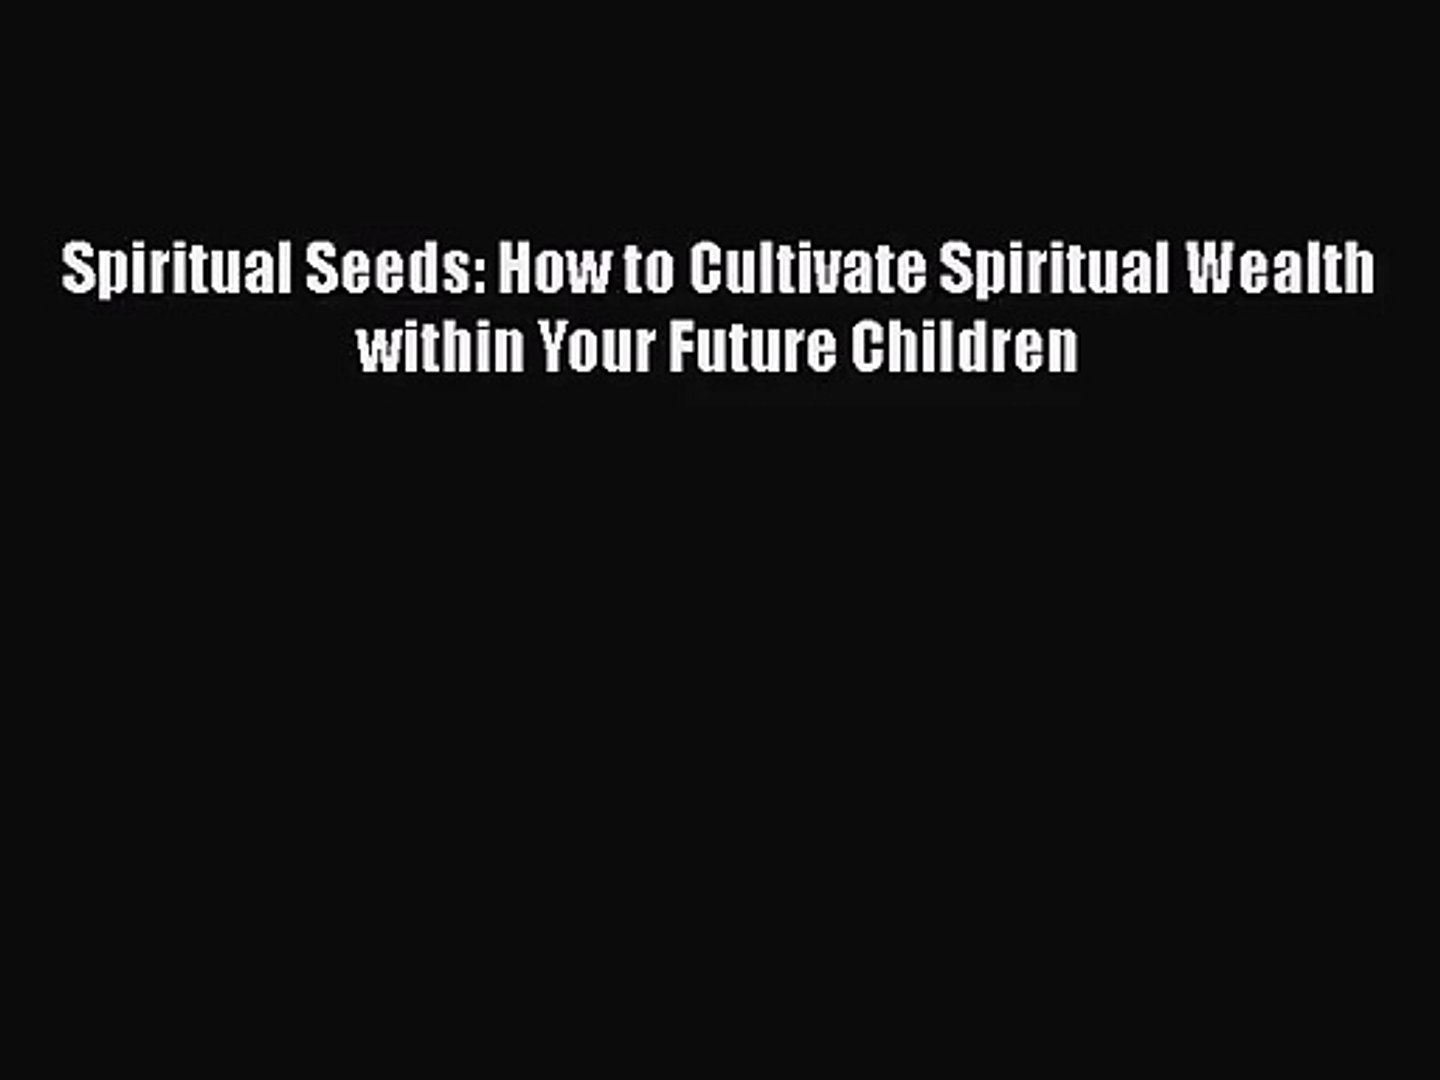 Spiritual Seeds: How to Cultivate Spiritual Wealth within Your Future Children [Read] Full